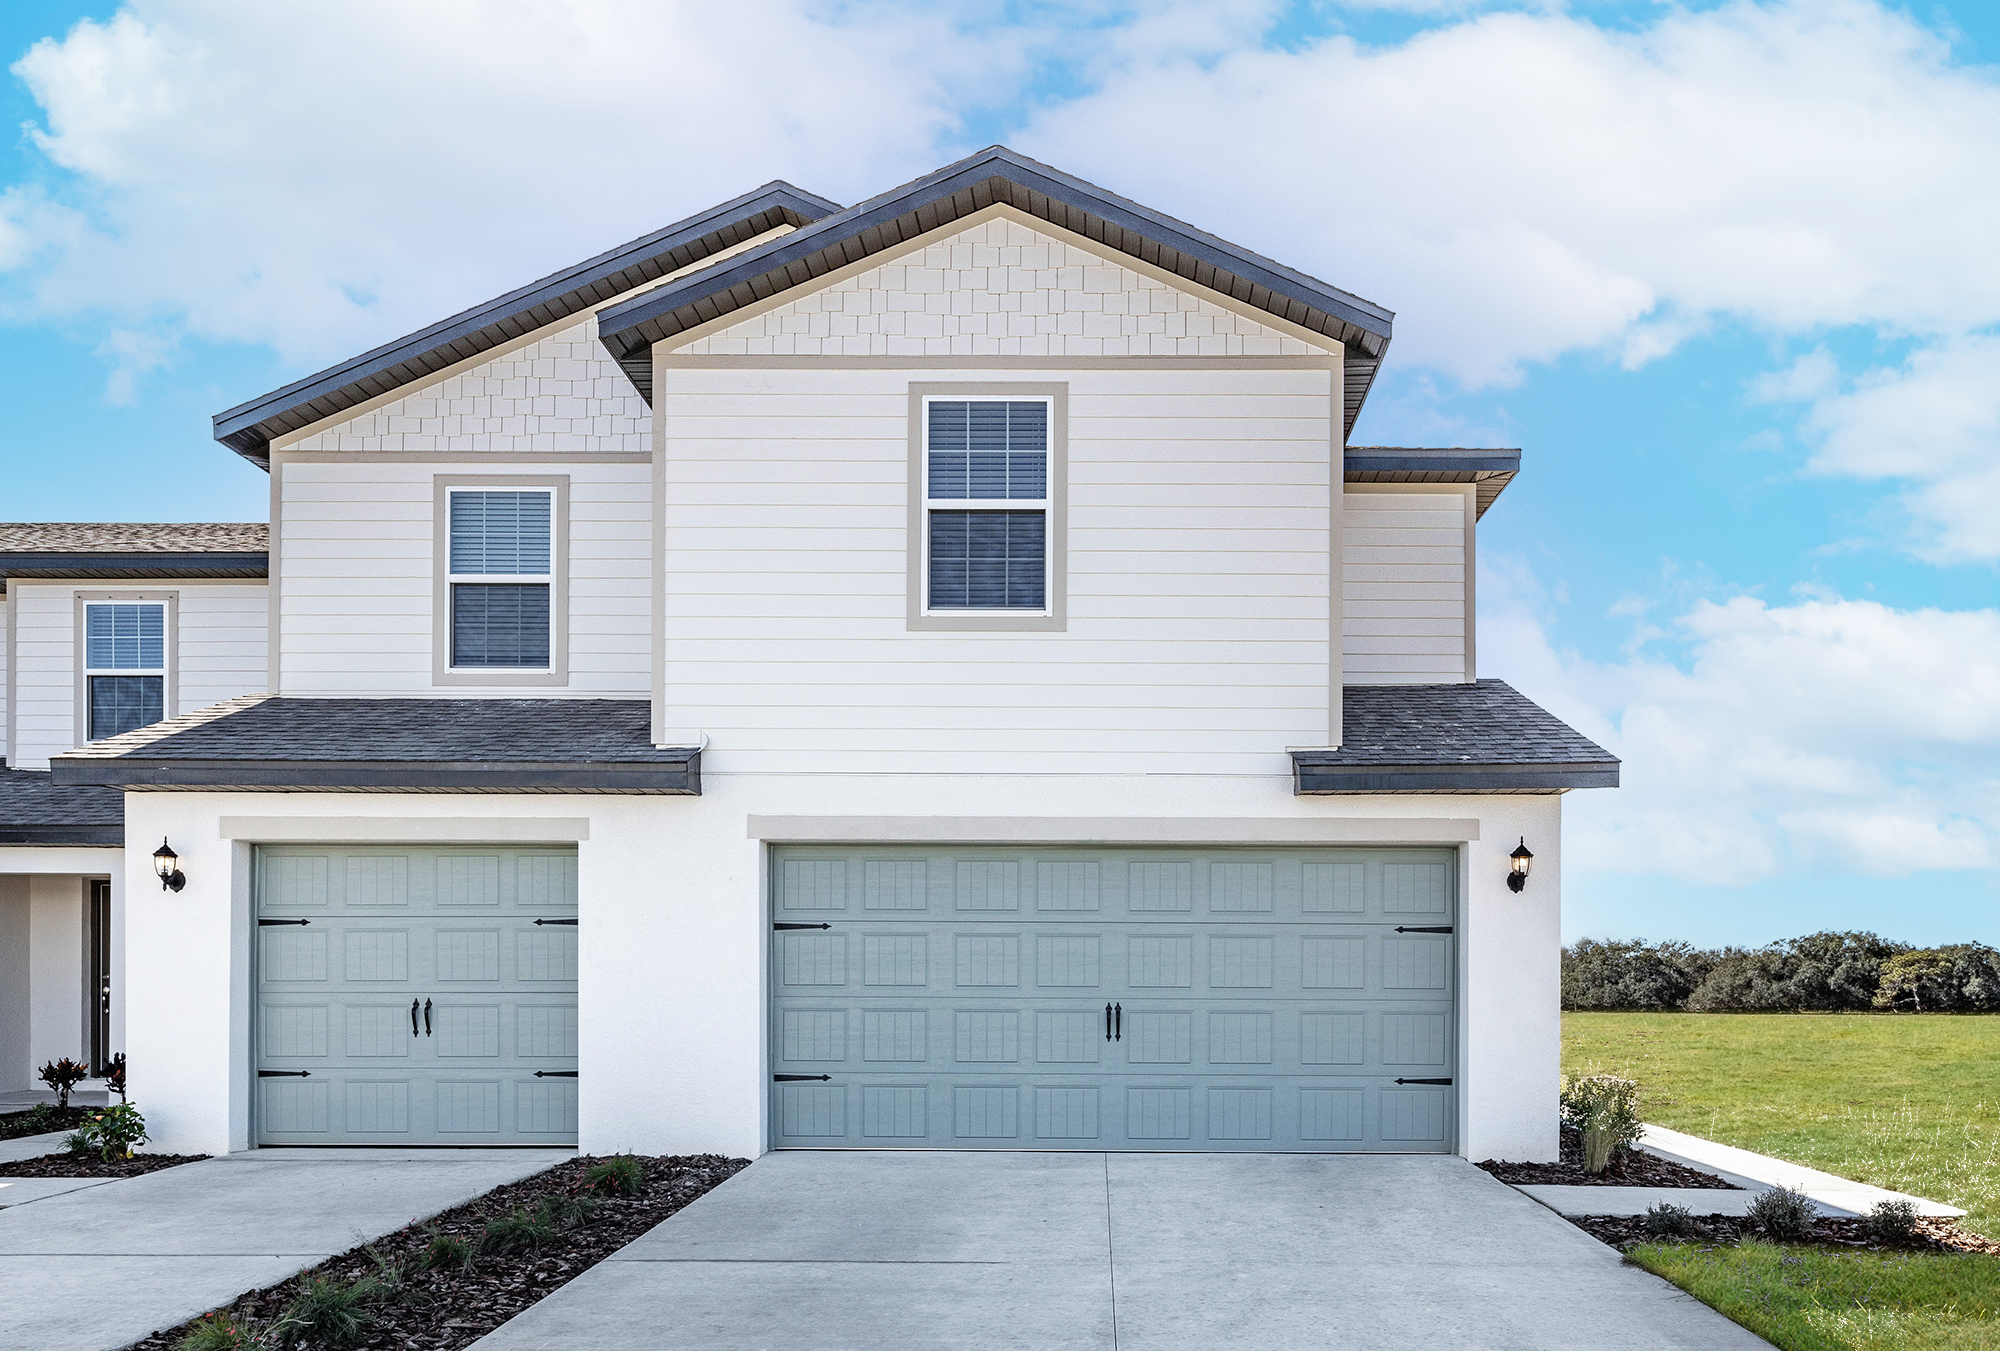 LGI Homes Opens New Community with Two-story Townhomes and Unmatched Upgrades Included